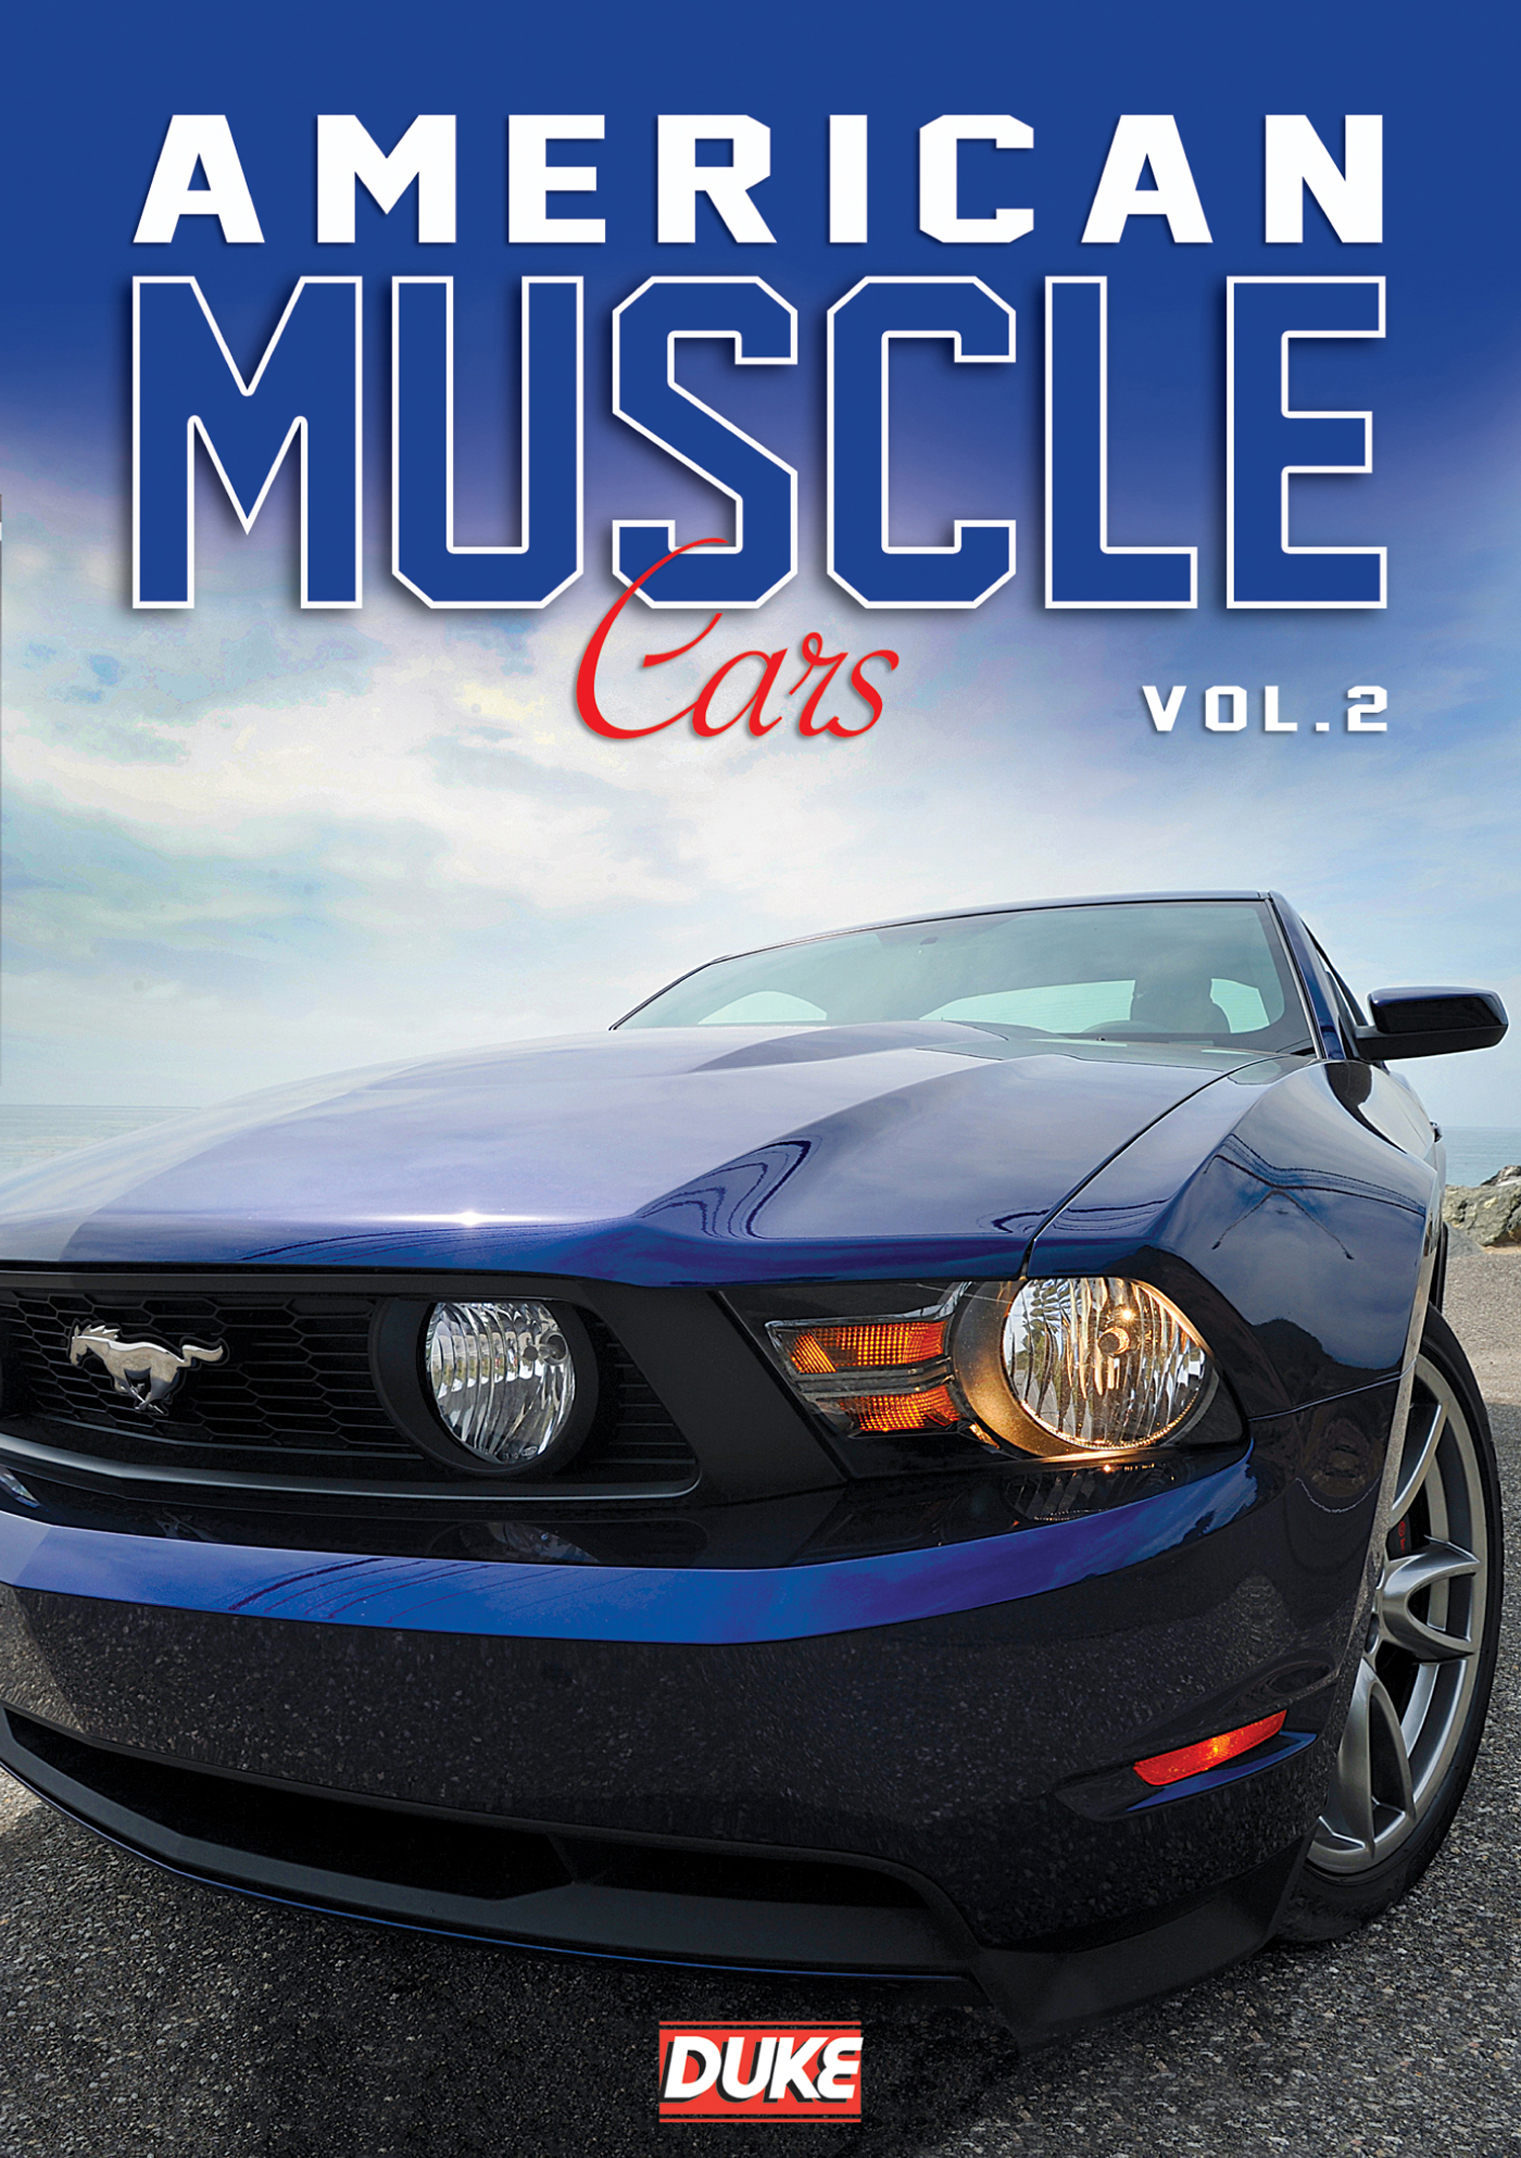 American Muscle Cars, Vol. 2